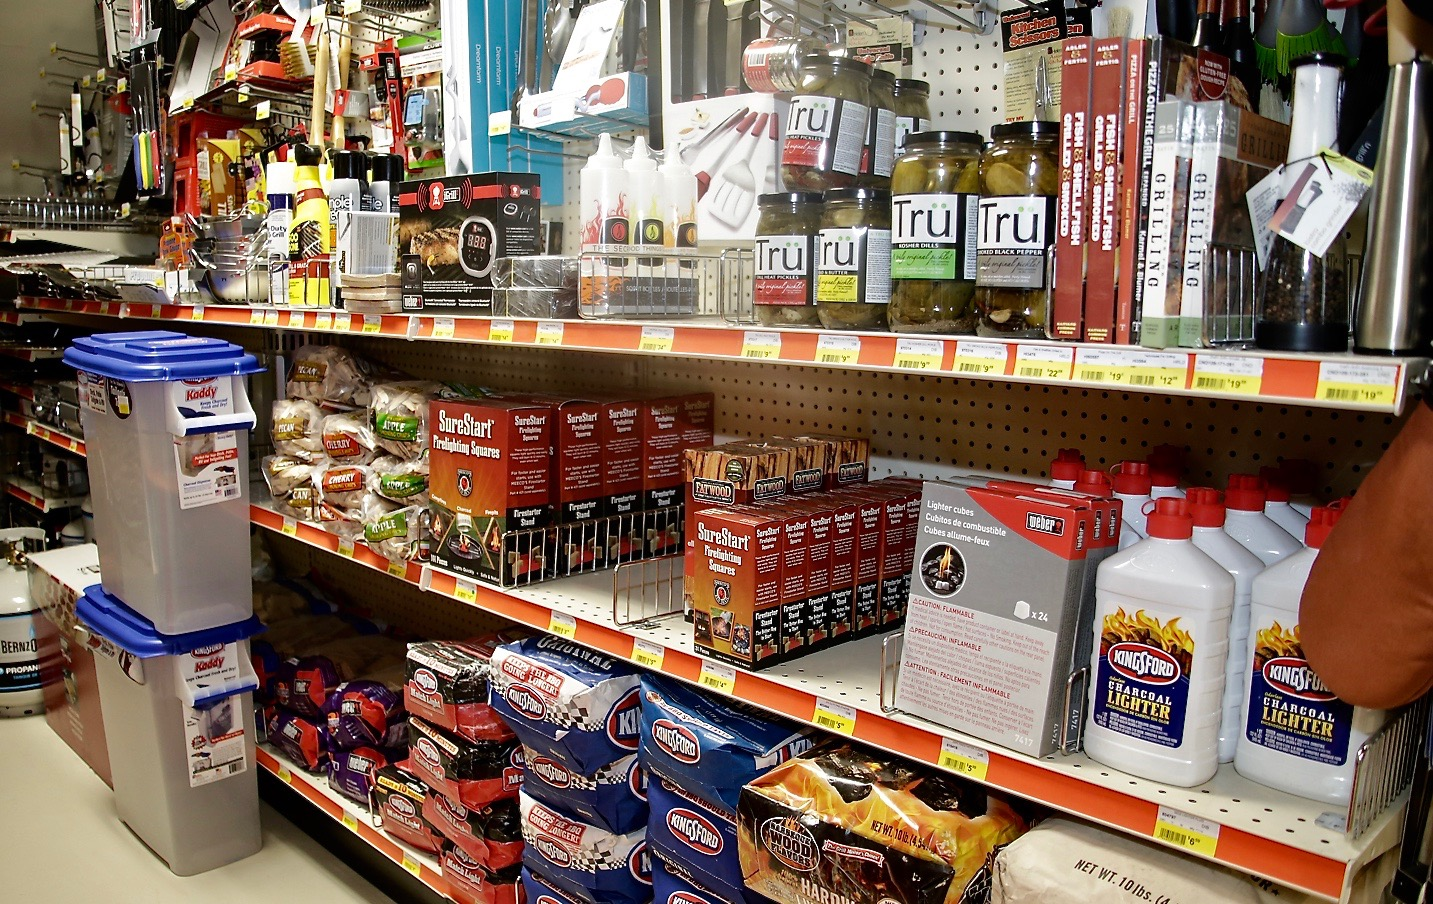 Woodstock Hardware aisle filled with everything needed for a BBQ, from charcoal to pickles and much more